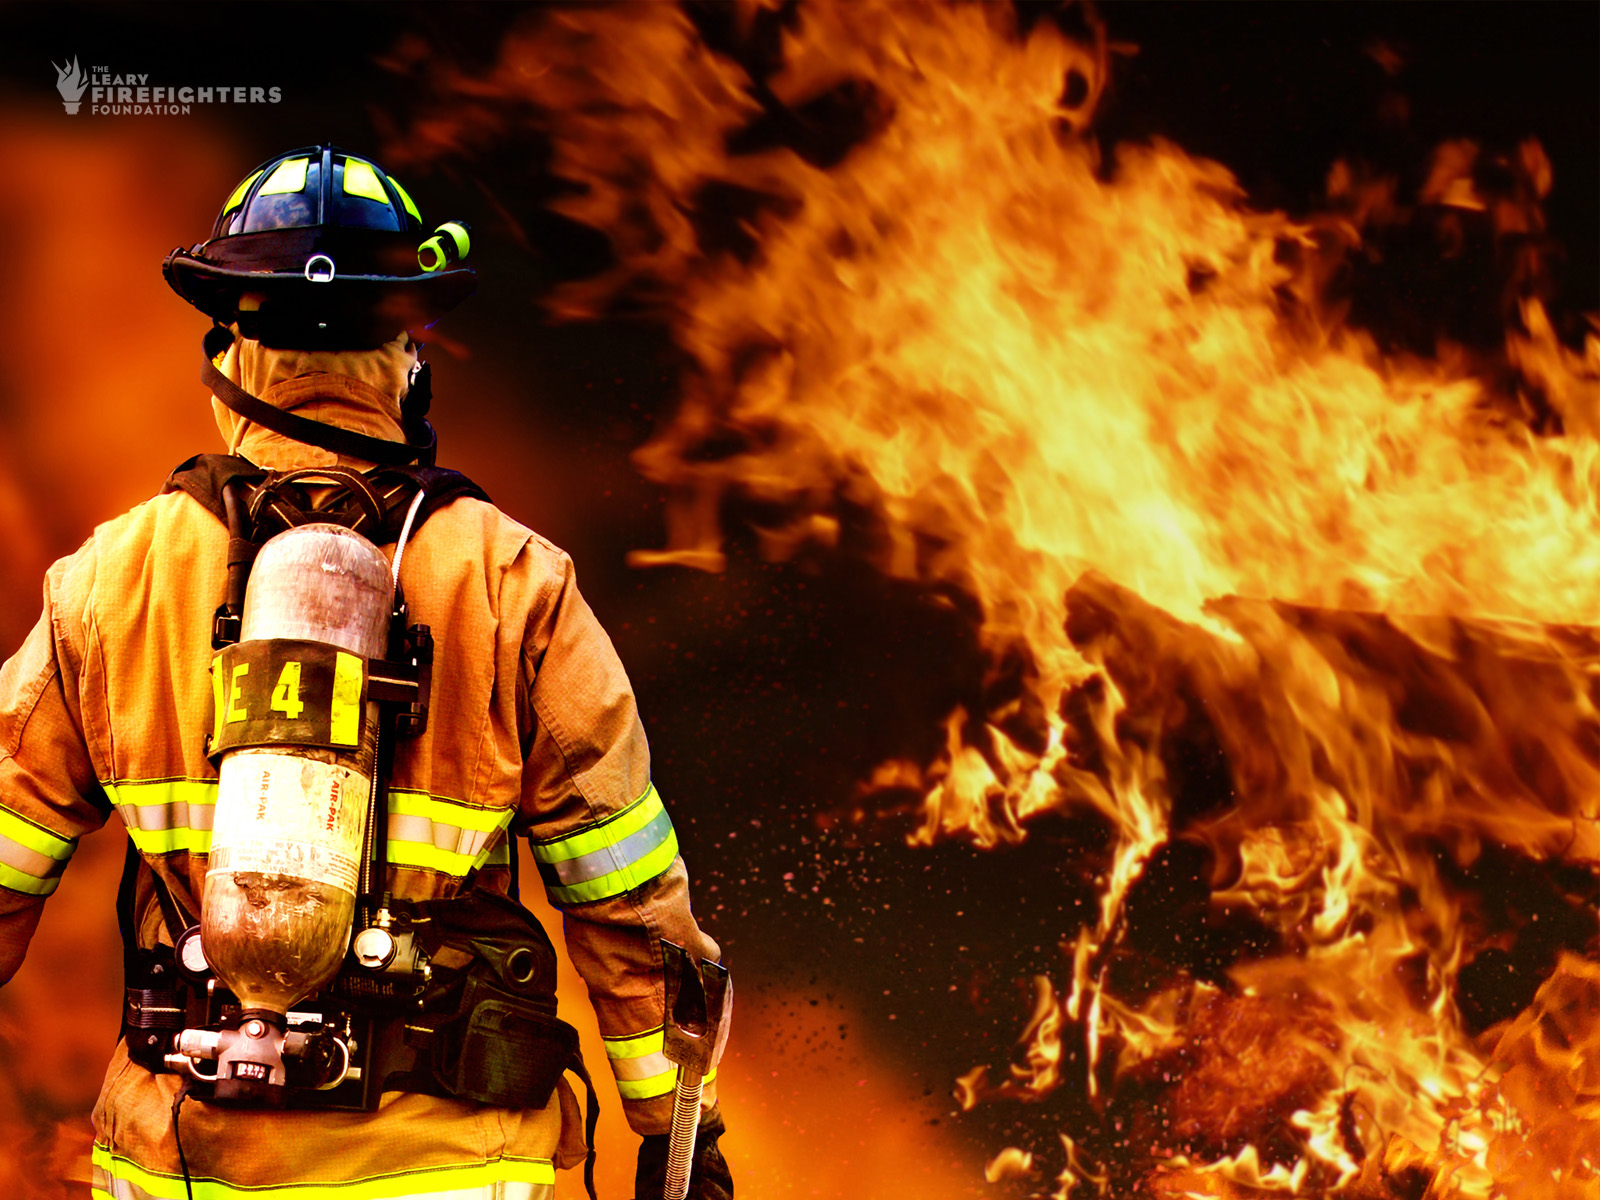 Free Desktop Screensavers And Backgrounds: Free Firefighter Screensavers And Wallpapers